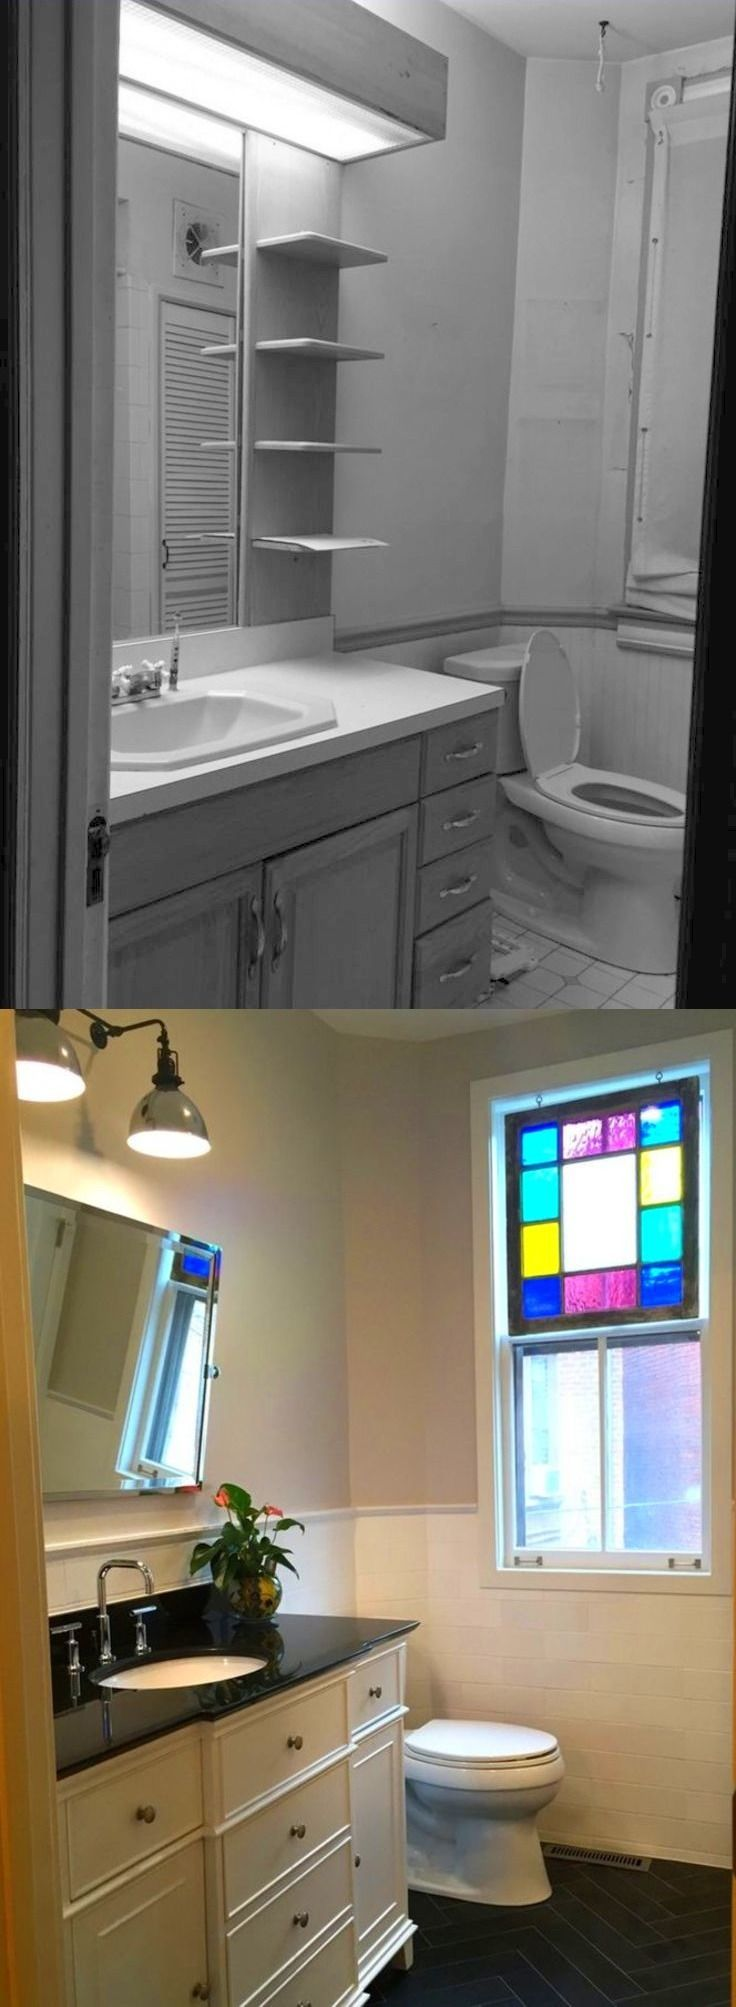 Before and After  Washington  DC Bathroom Reno. 17 Best images about Bathroom Renovation on Pinterest   Bungalow